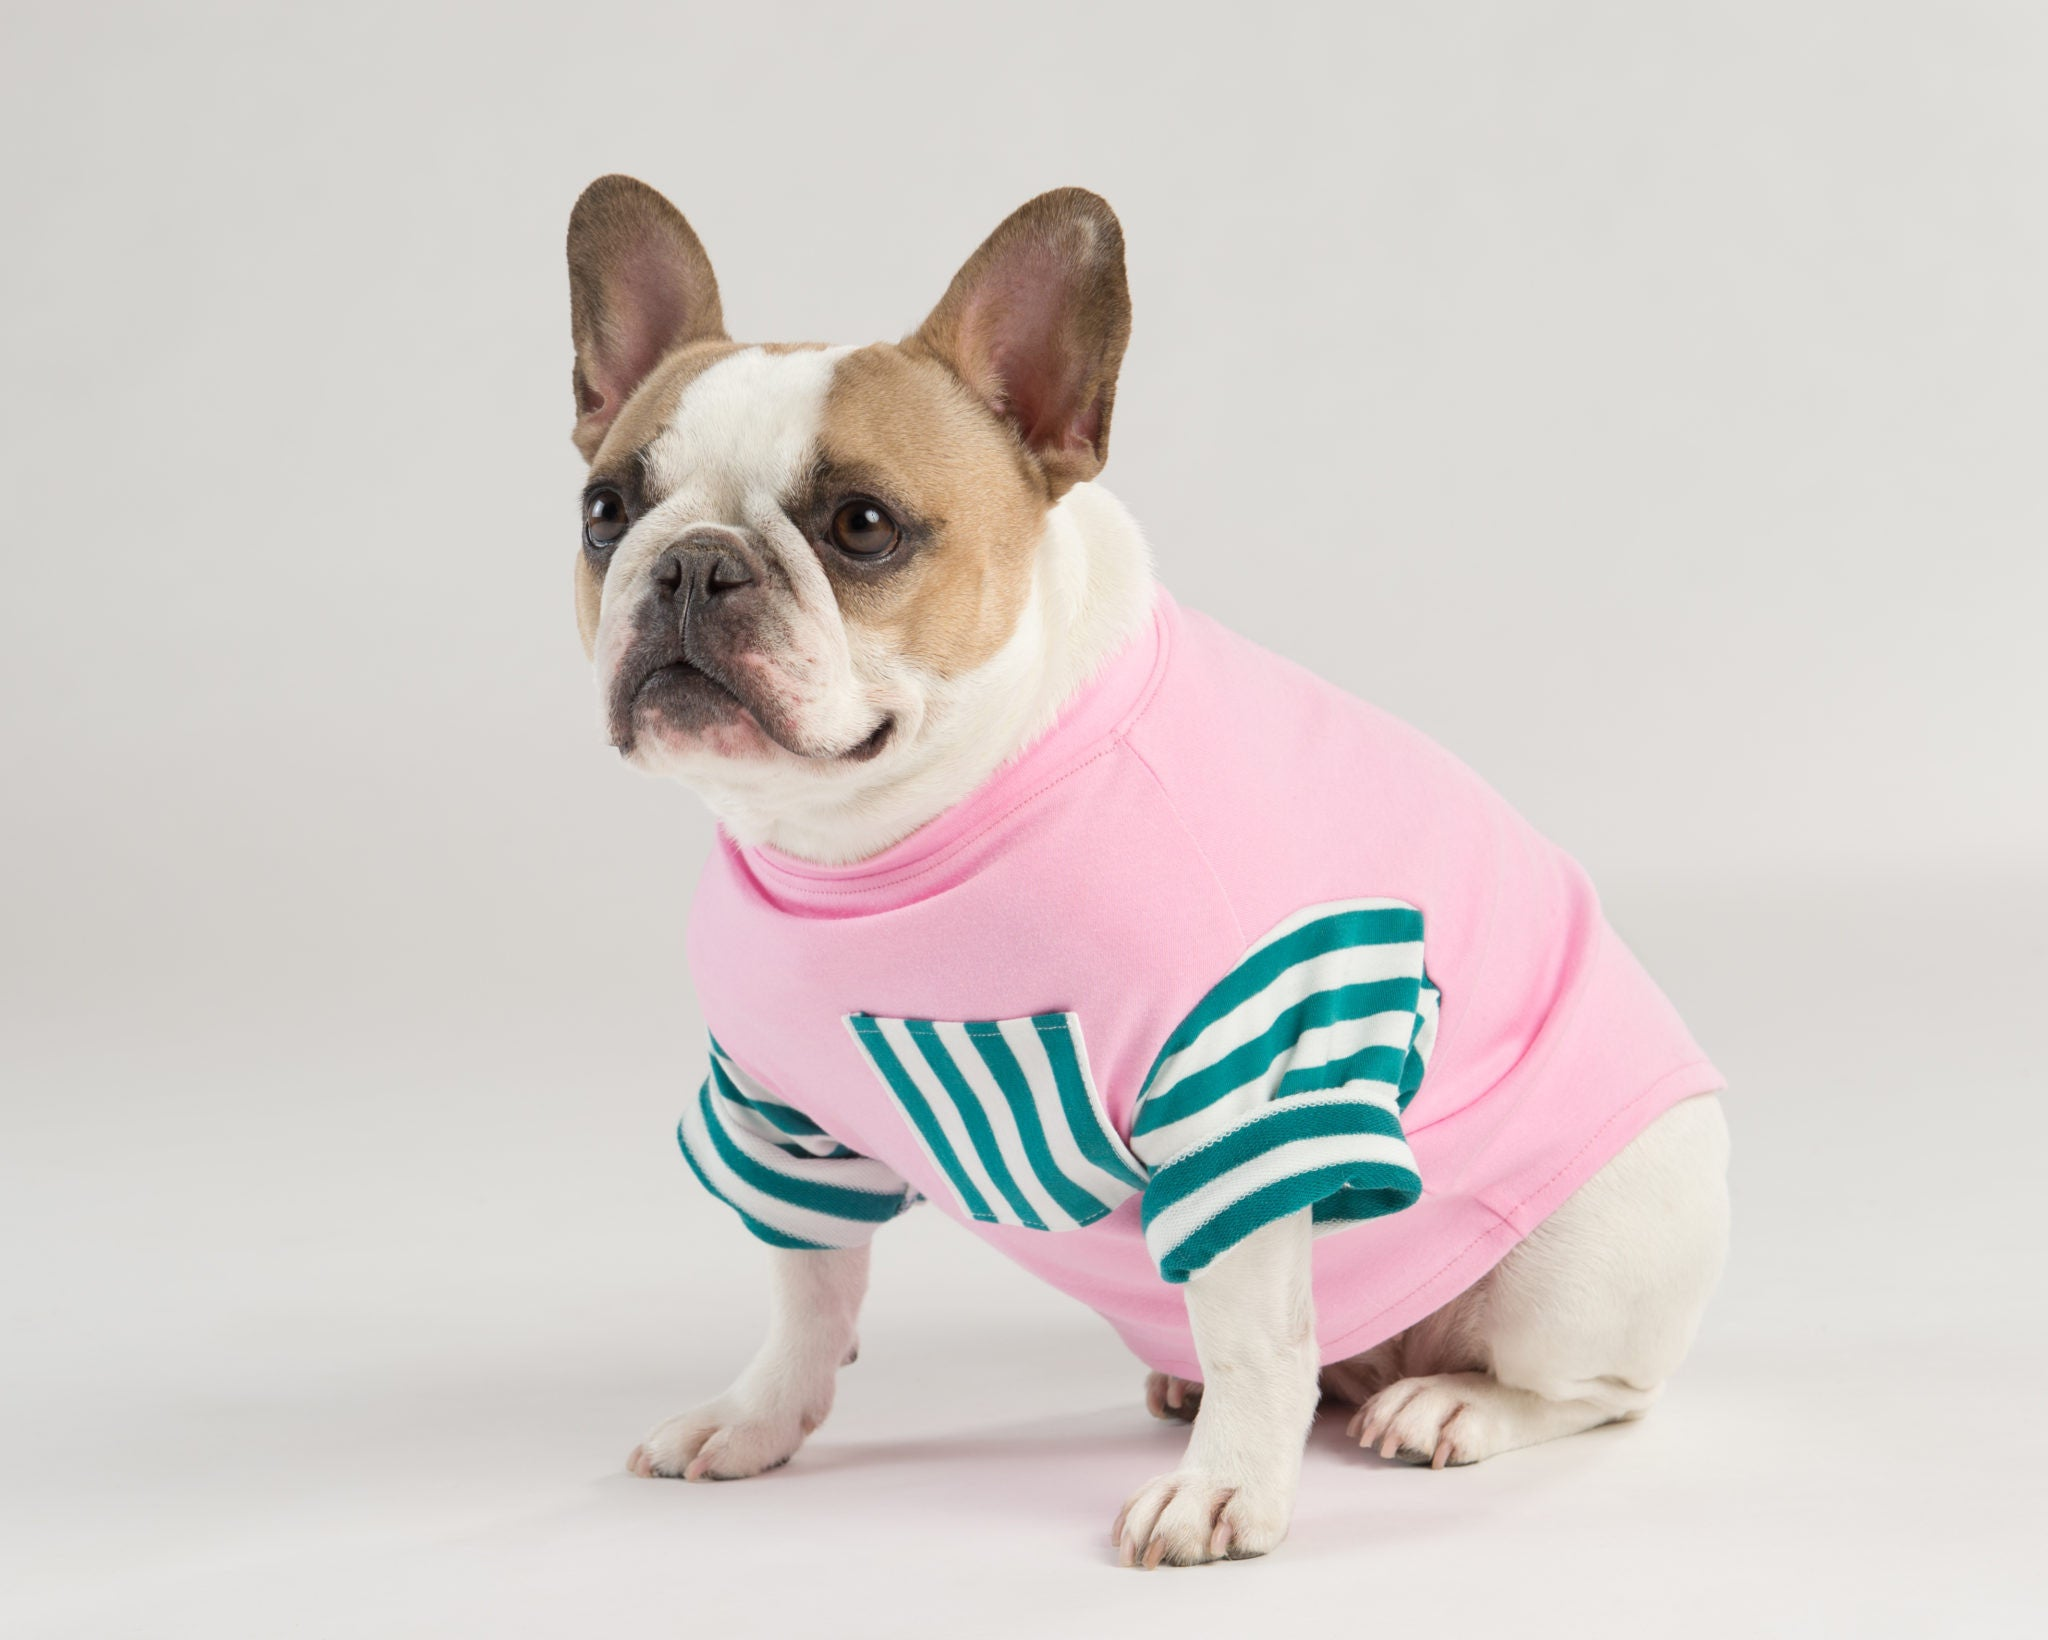 Dog Threads Bright Colorful Dog Clothing Collection for Dog Loves Repeats